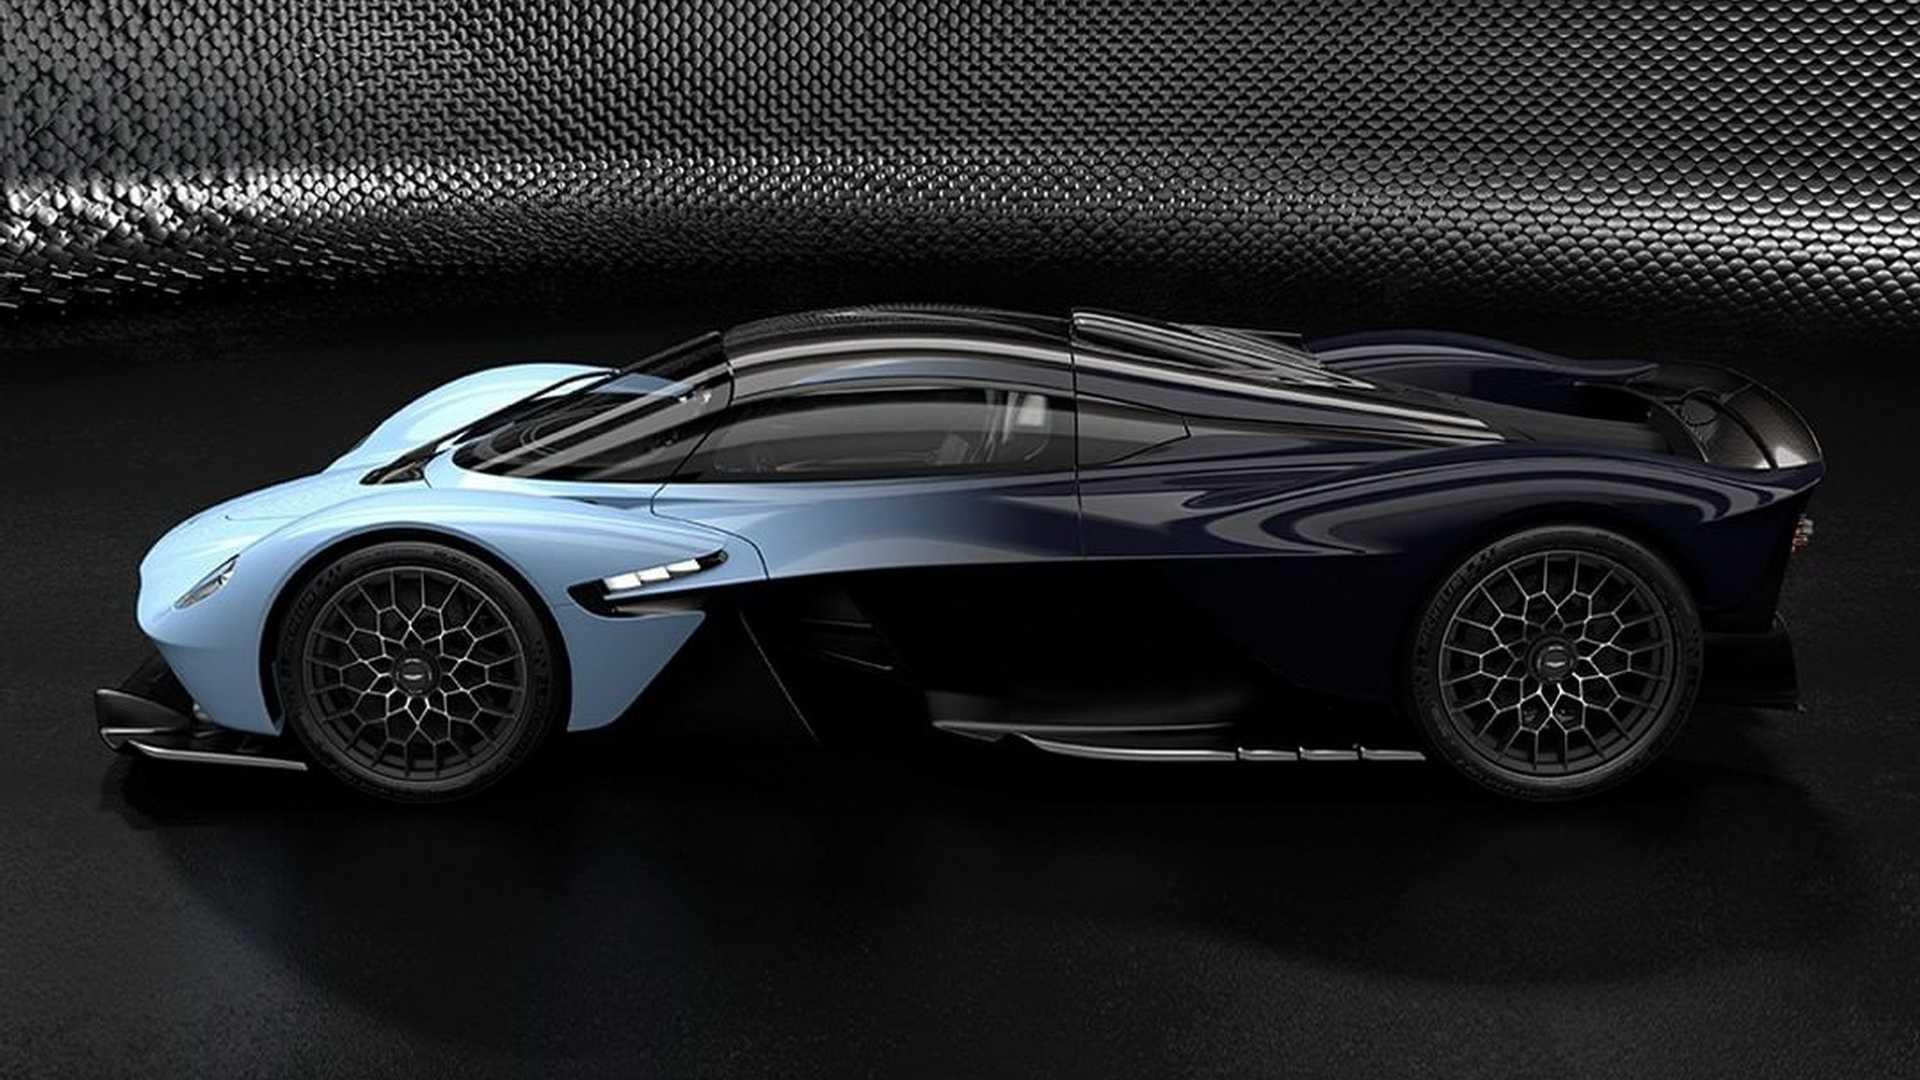 45 New 2020 Aston Martin Valkyrie Price